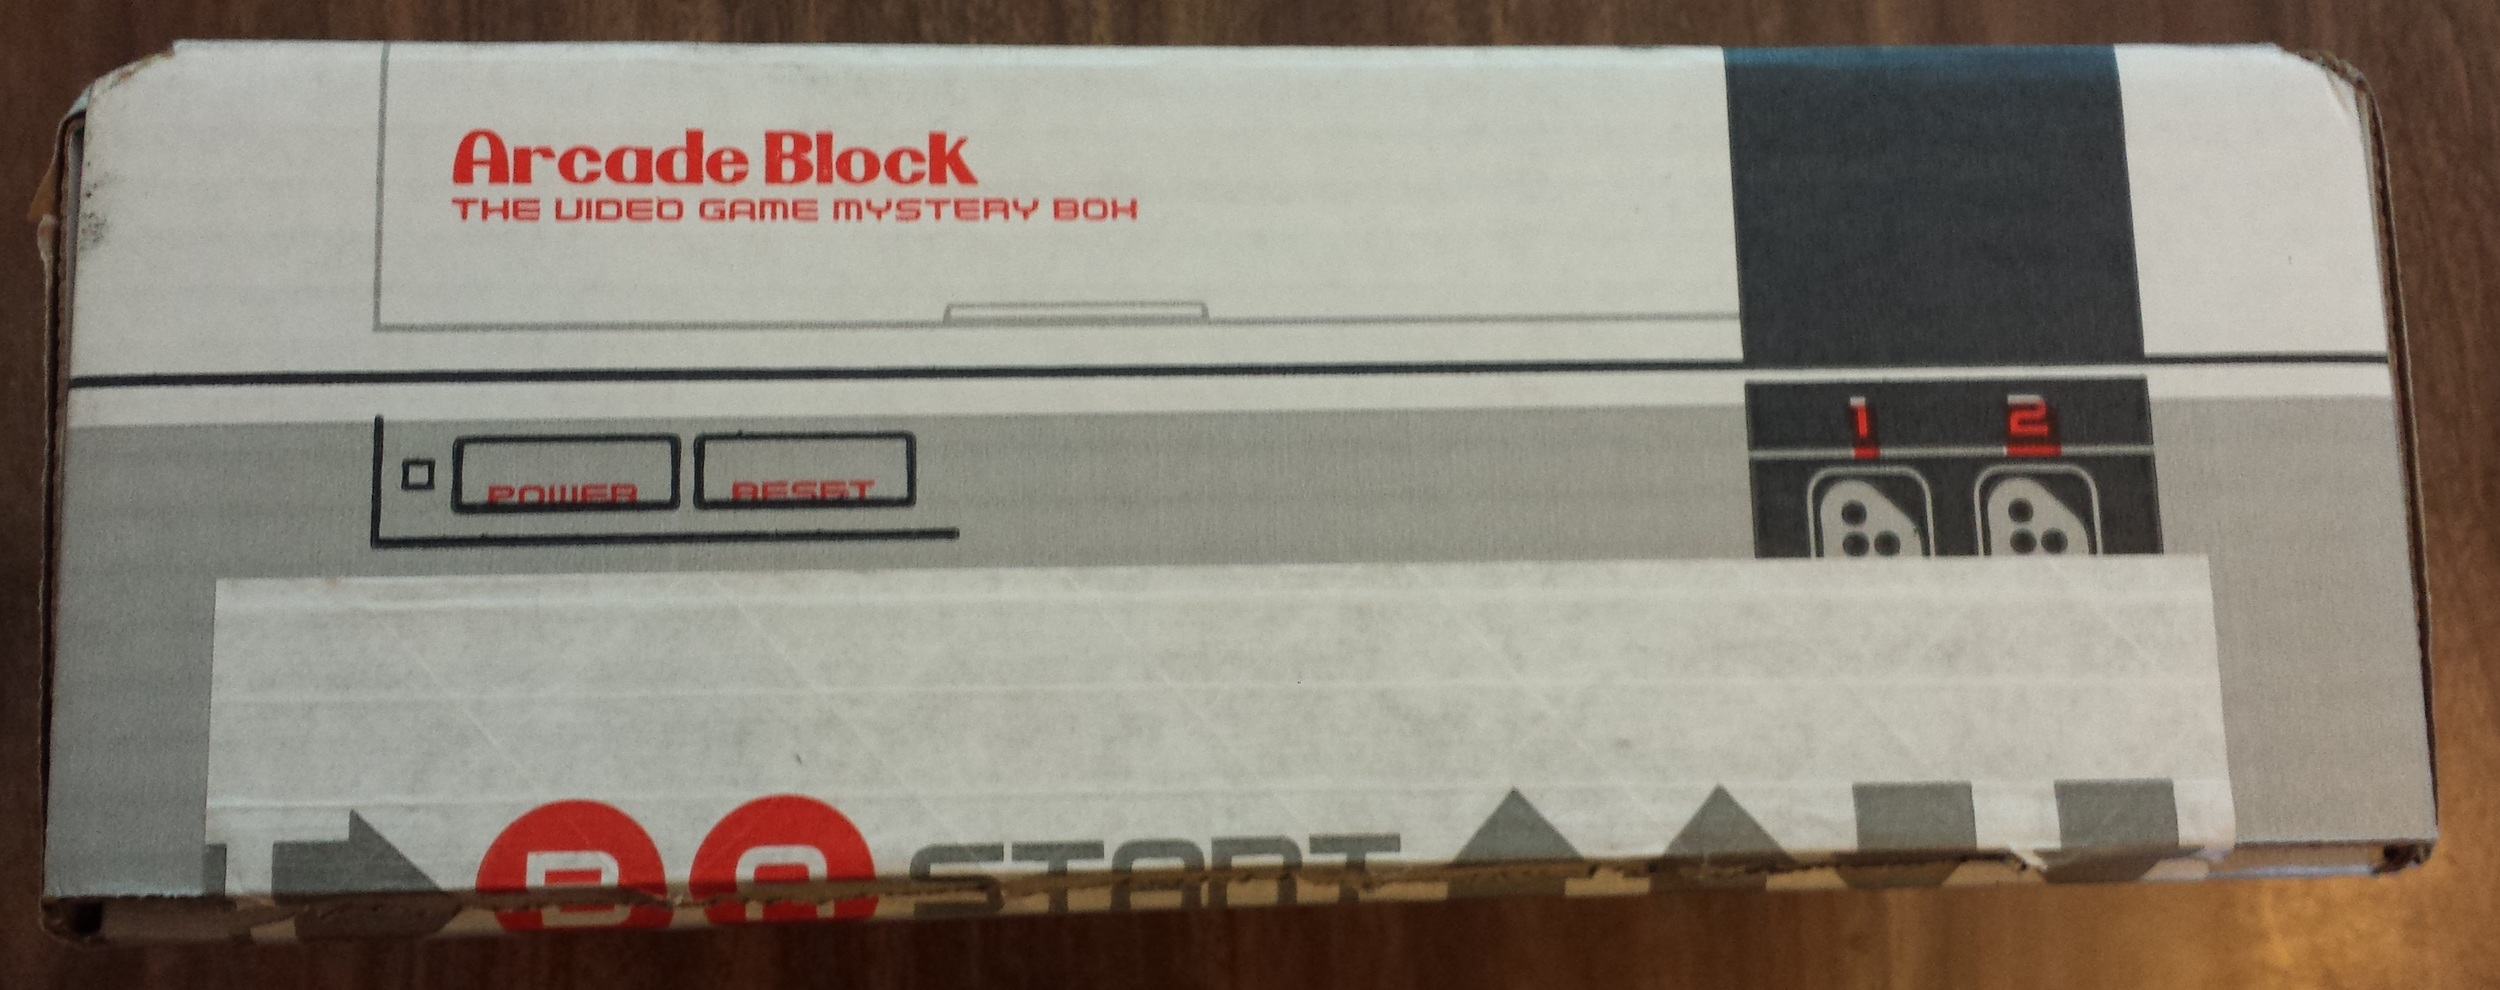 The front of the Arcade Block box